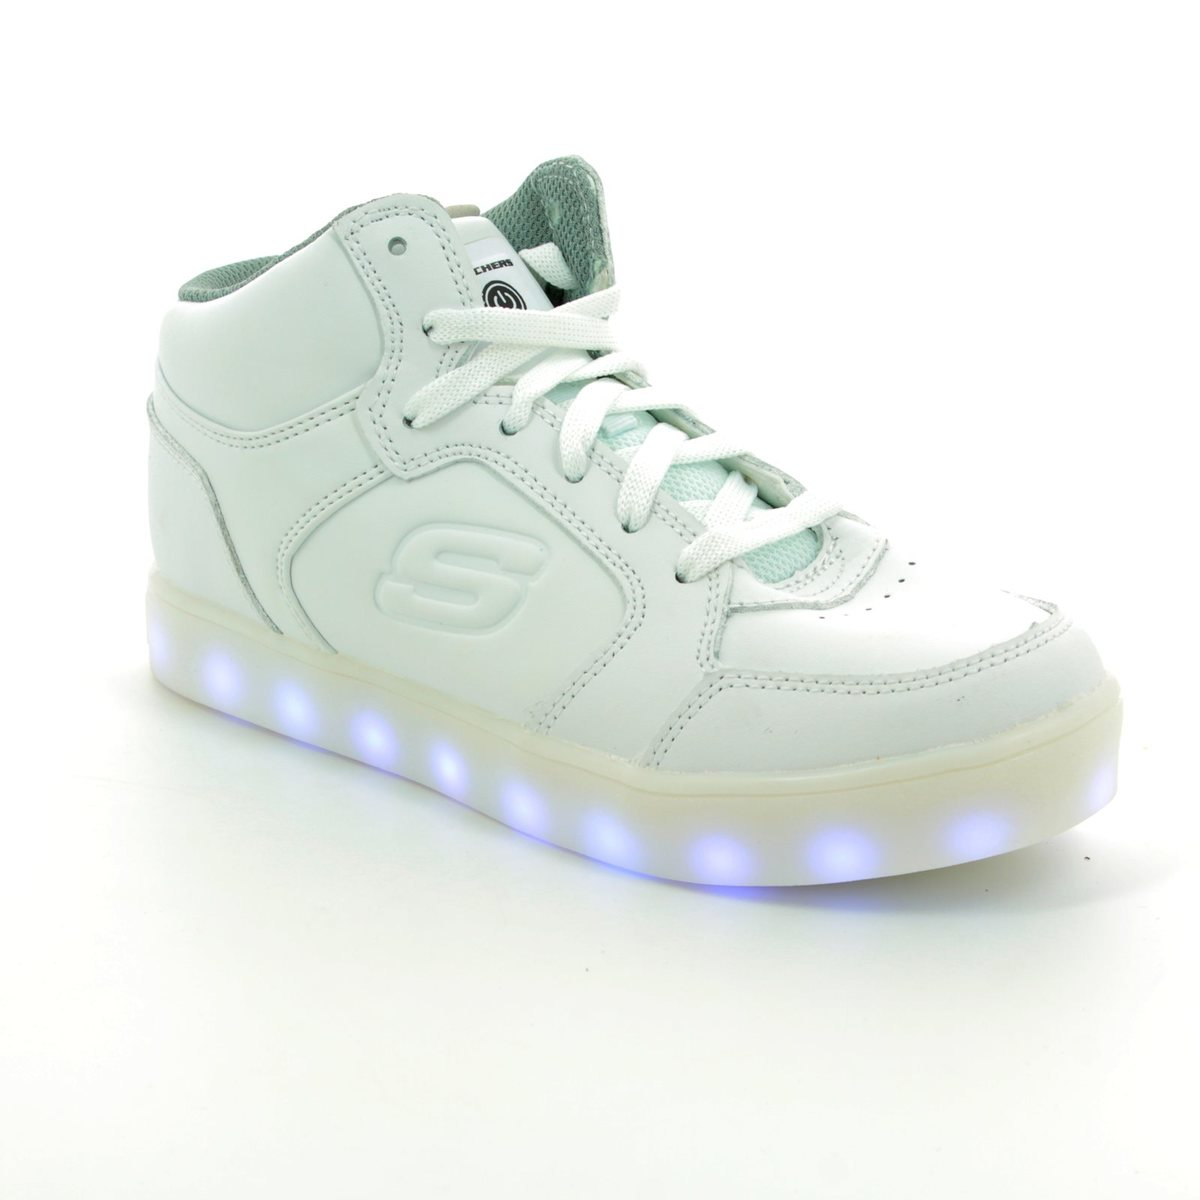 huge discount 29705 8ae3e Skechers Everyday Shoes - White - 90600 ENERGY LIGHTS